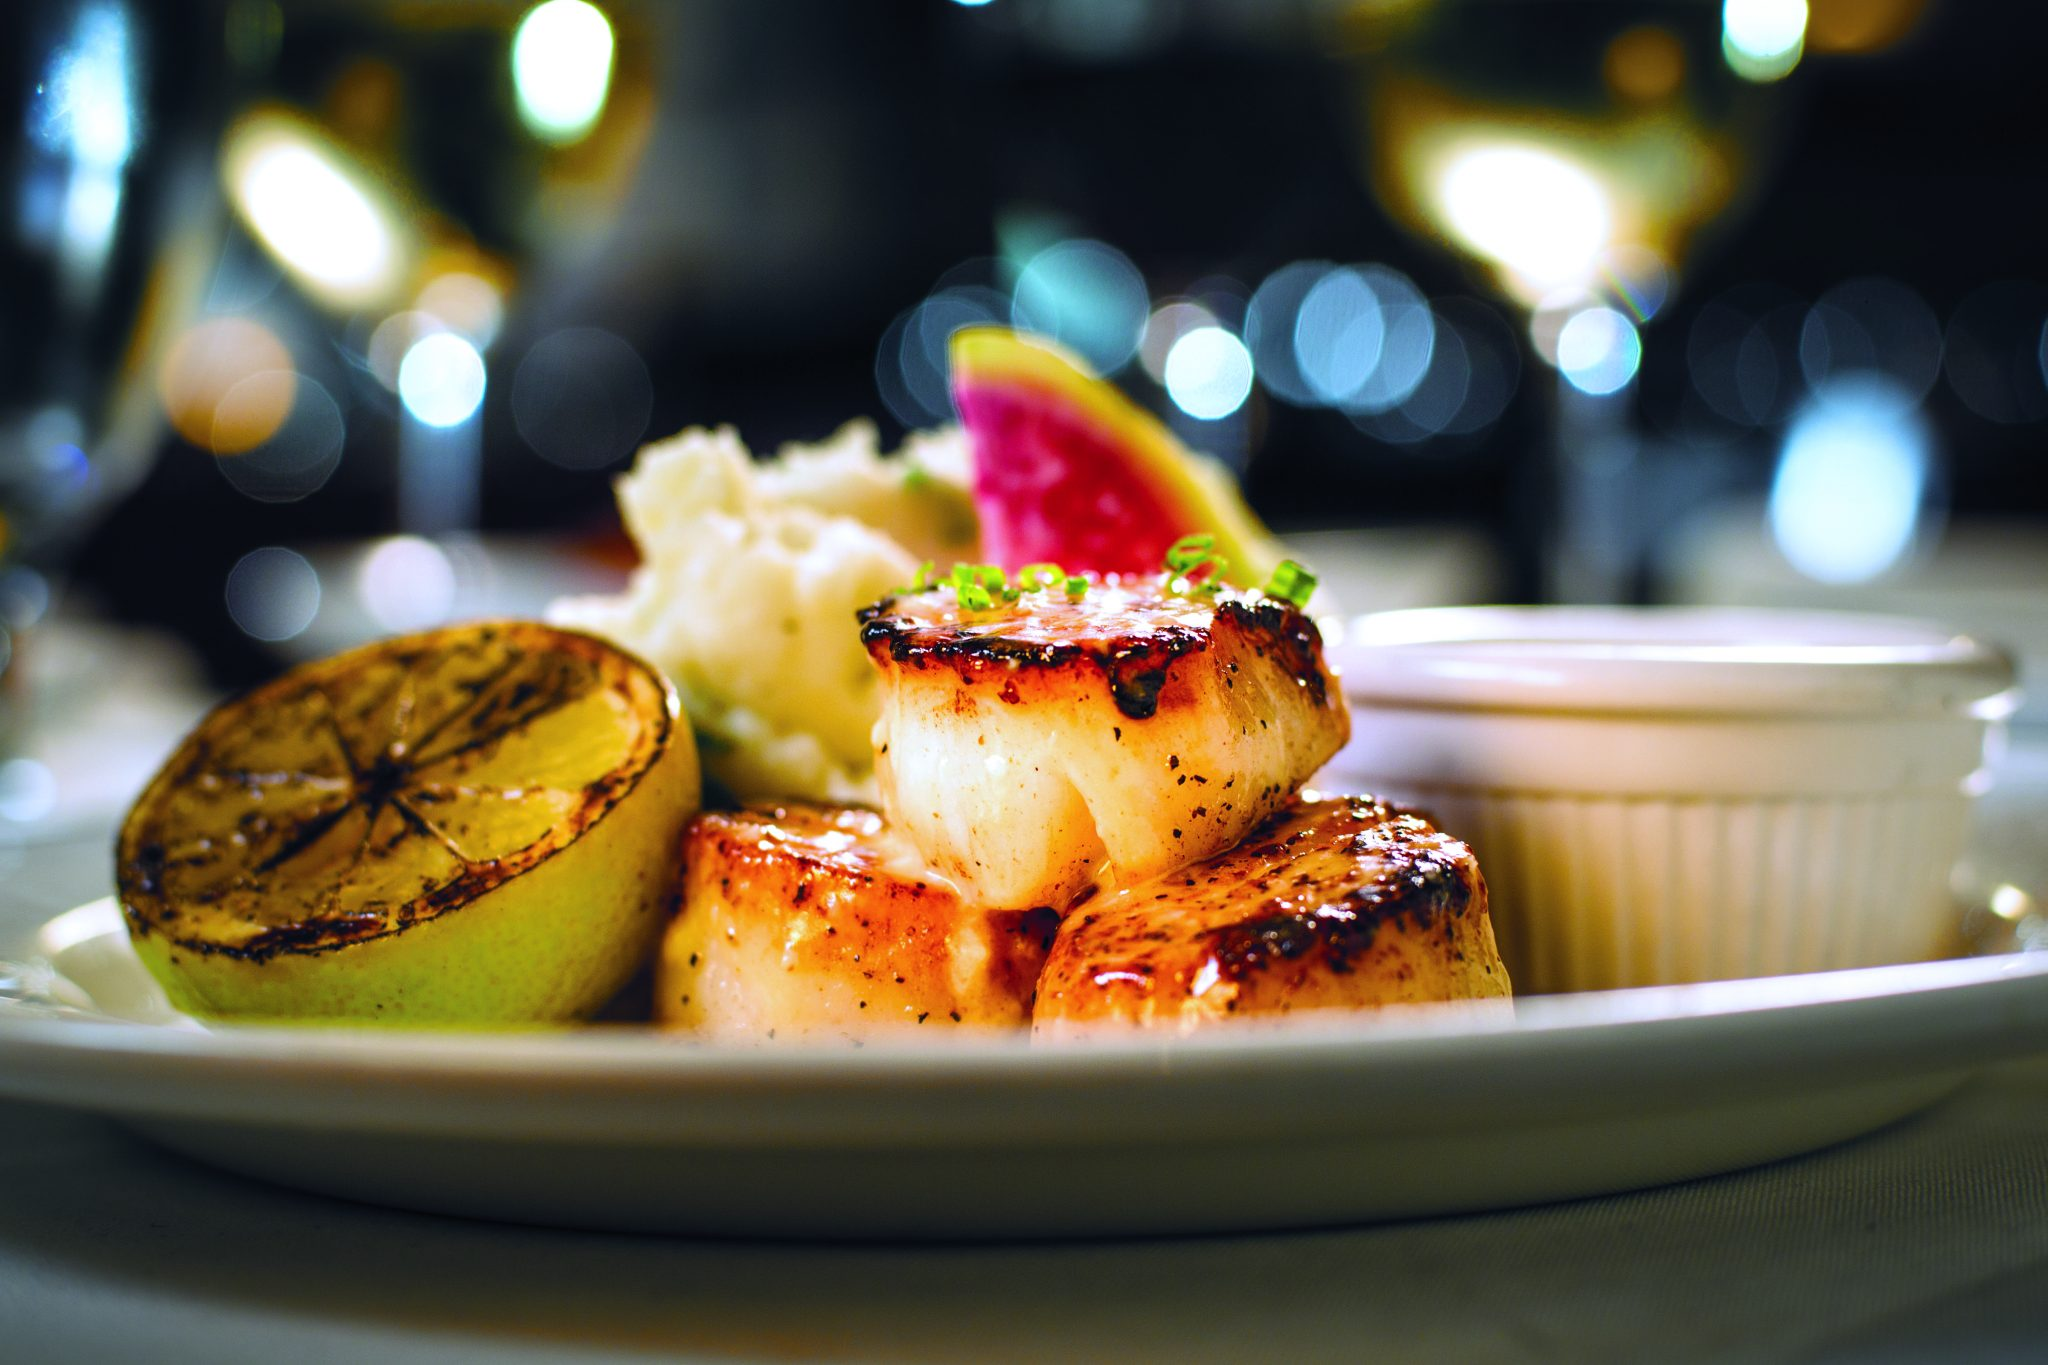 picture of NEW ENGLAND PAN-SEARED SCALLOPS garnished with a lemon